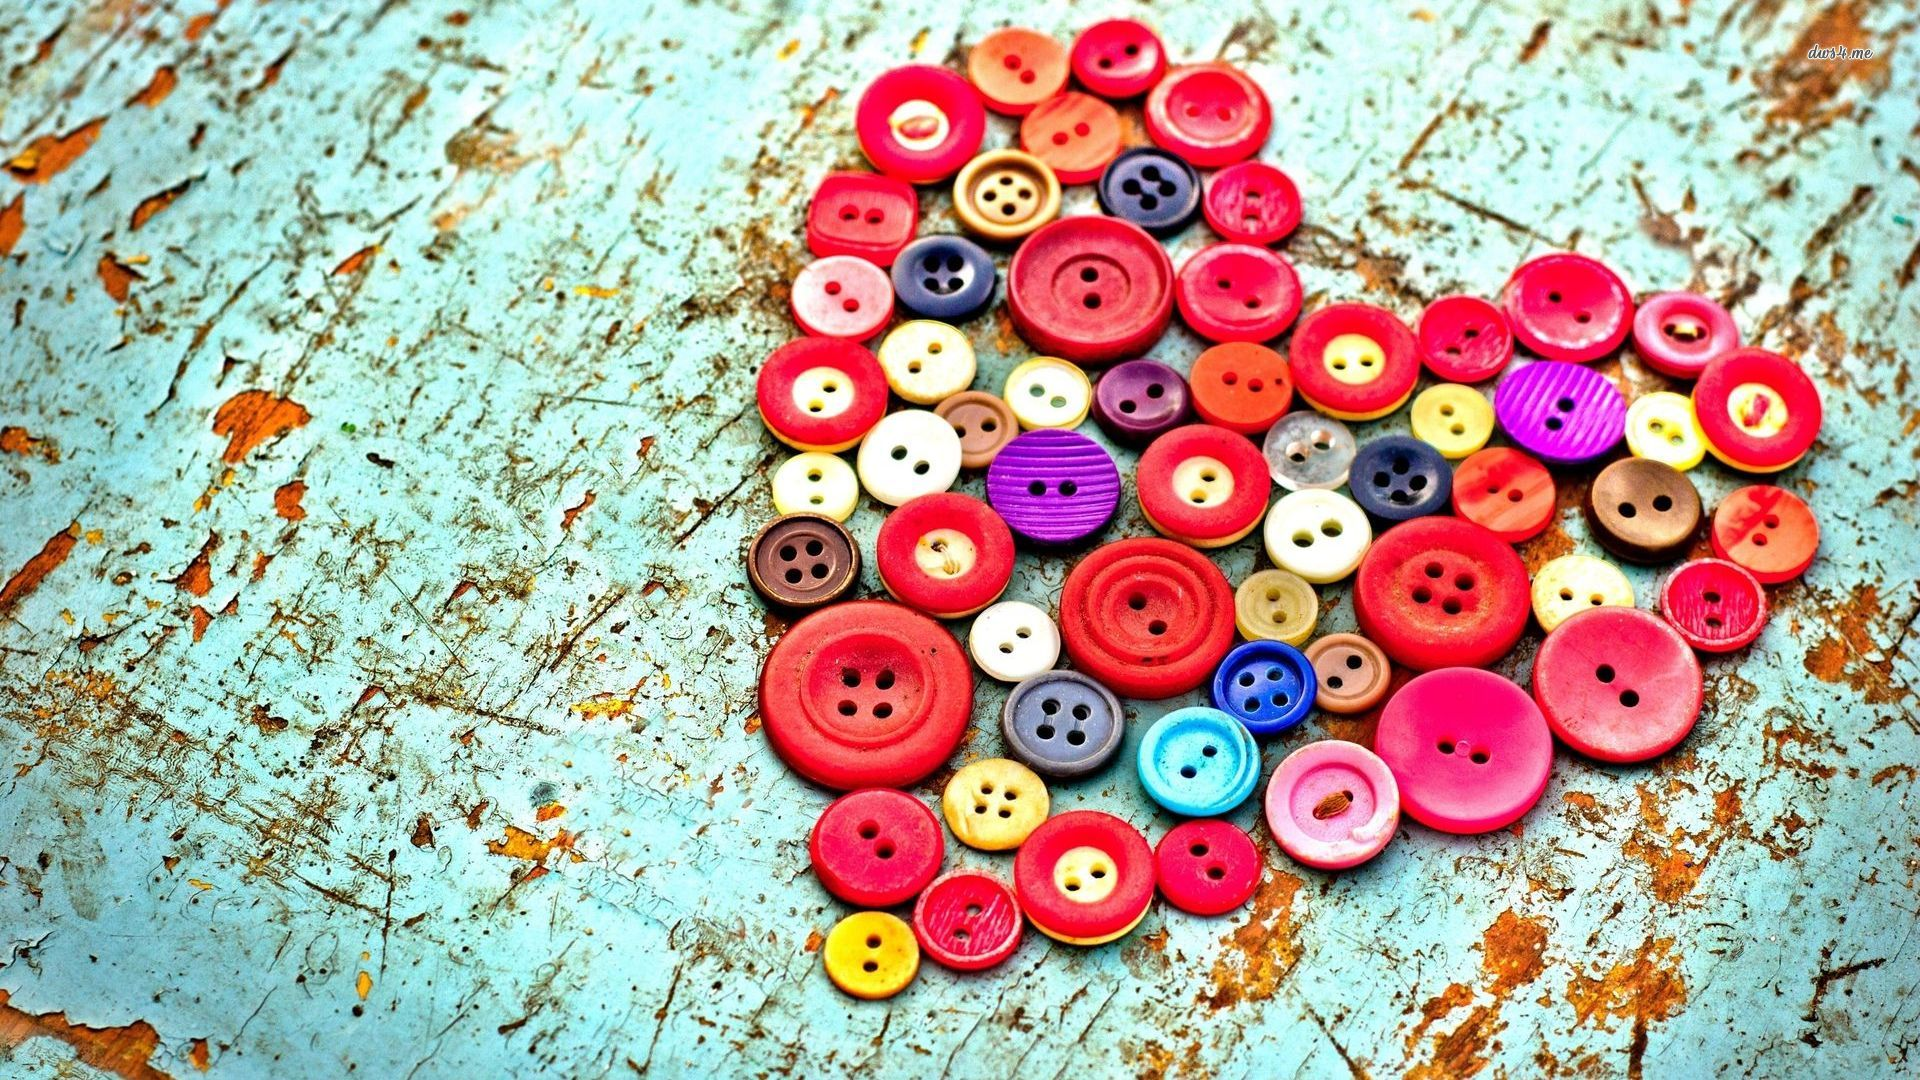 17473-multicolored-buttons-forming-a-heart-1920x1080-photography-wallpaper